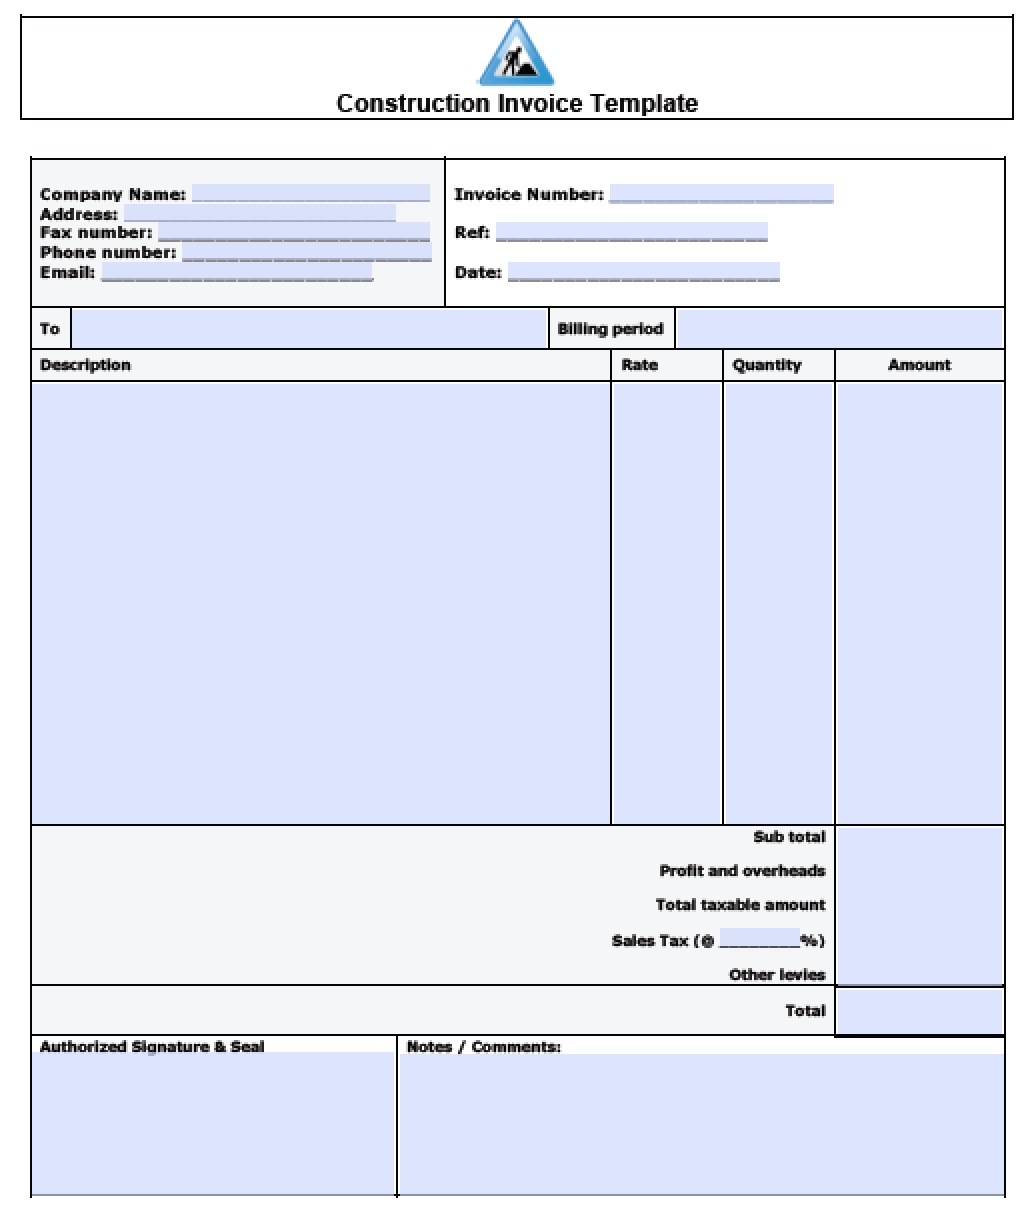 Construction Invoice Sample Insssrenterprisesco - Contractor invoice templates